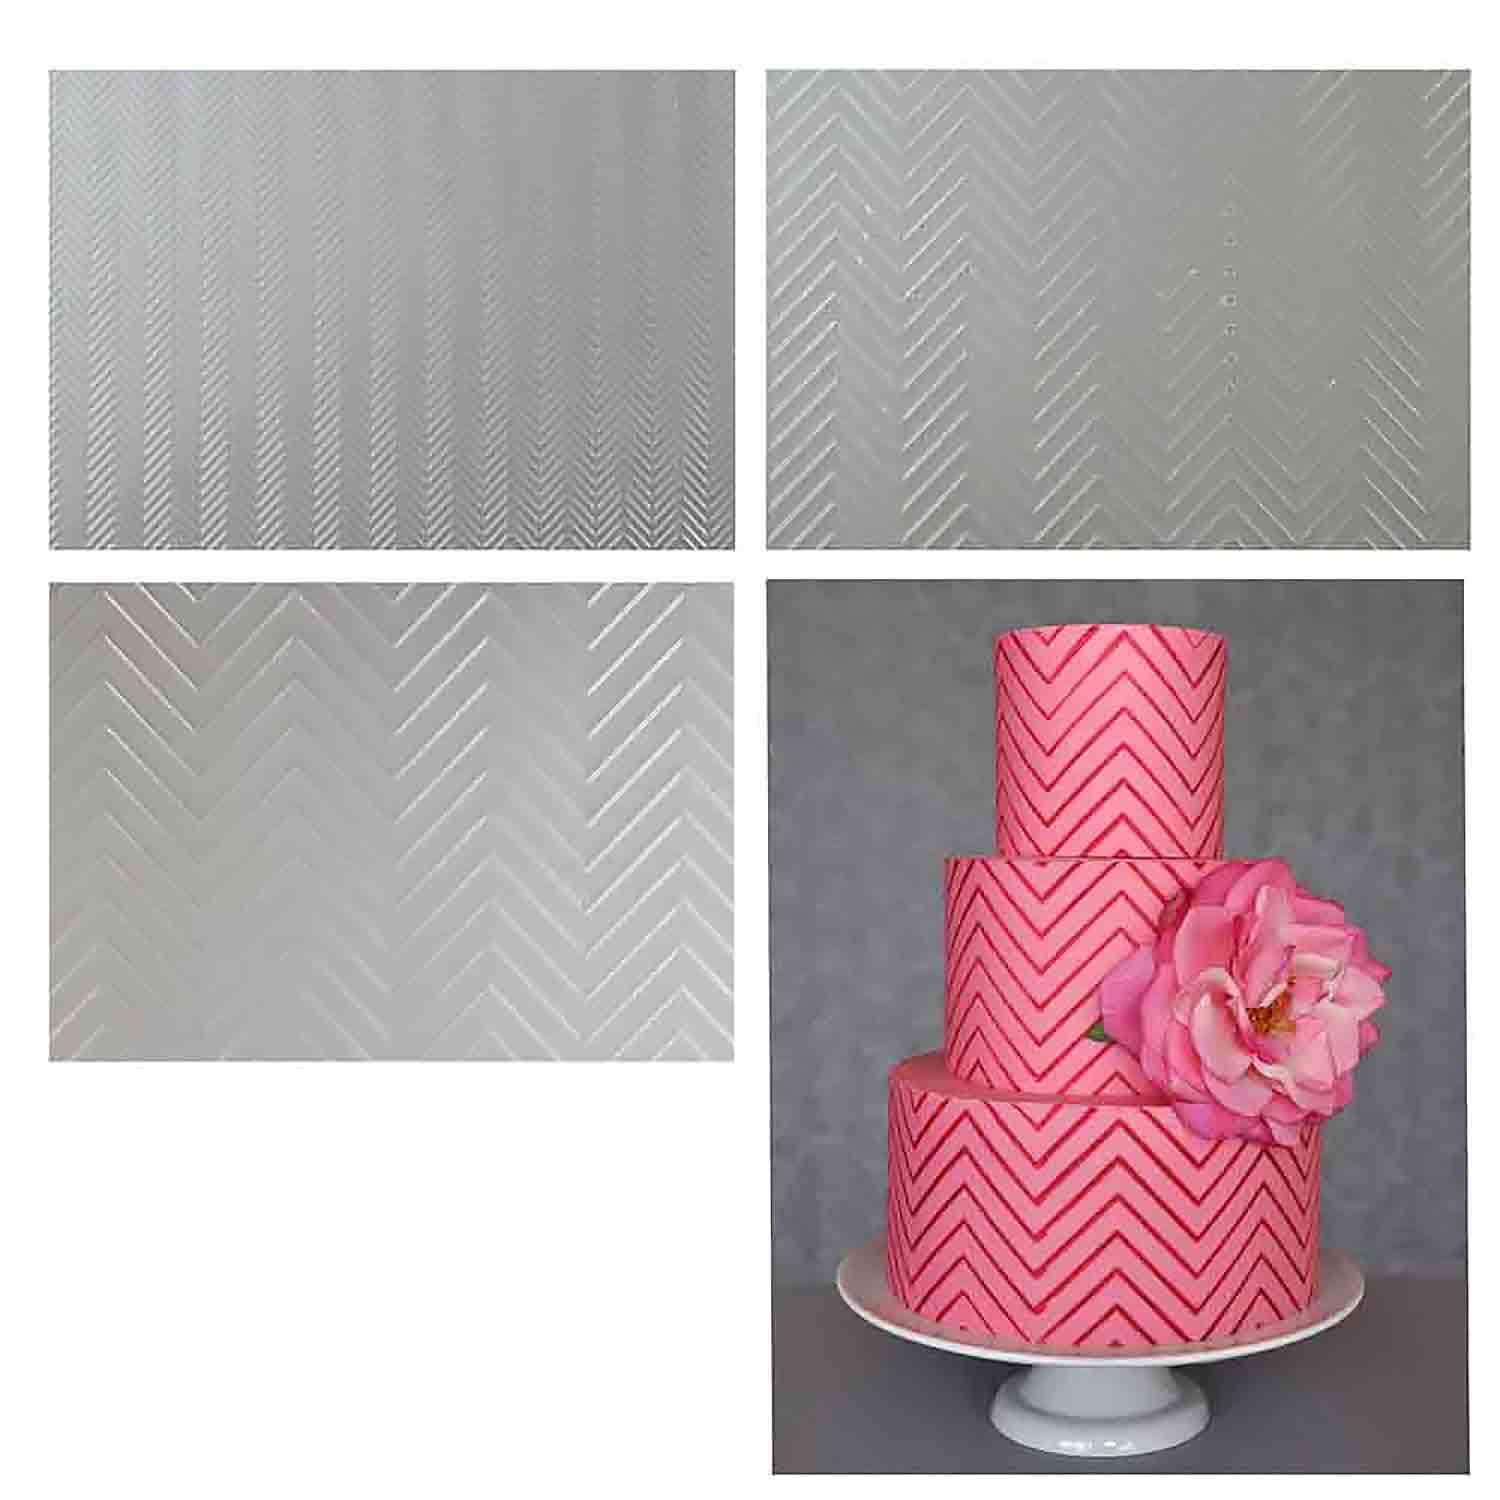 Chevron Pattern Texture Sheet Set by Lauren Kitchens